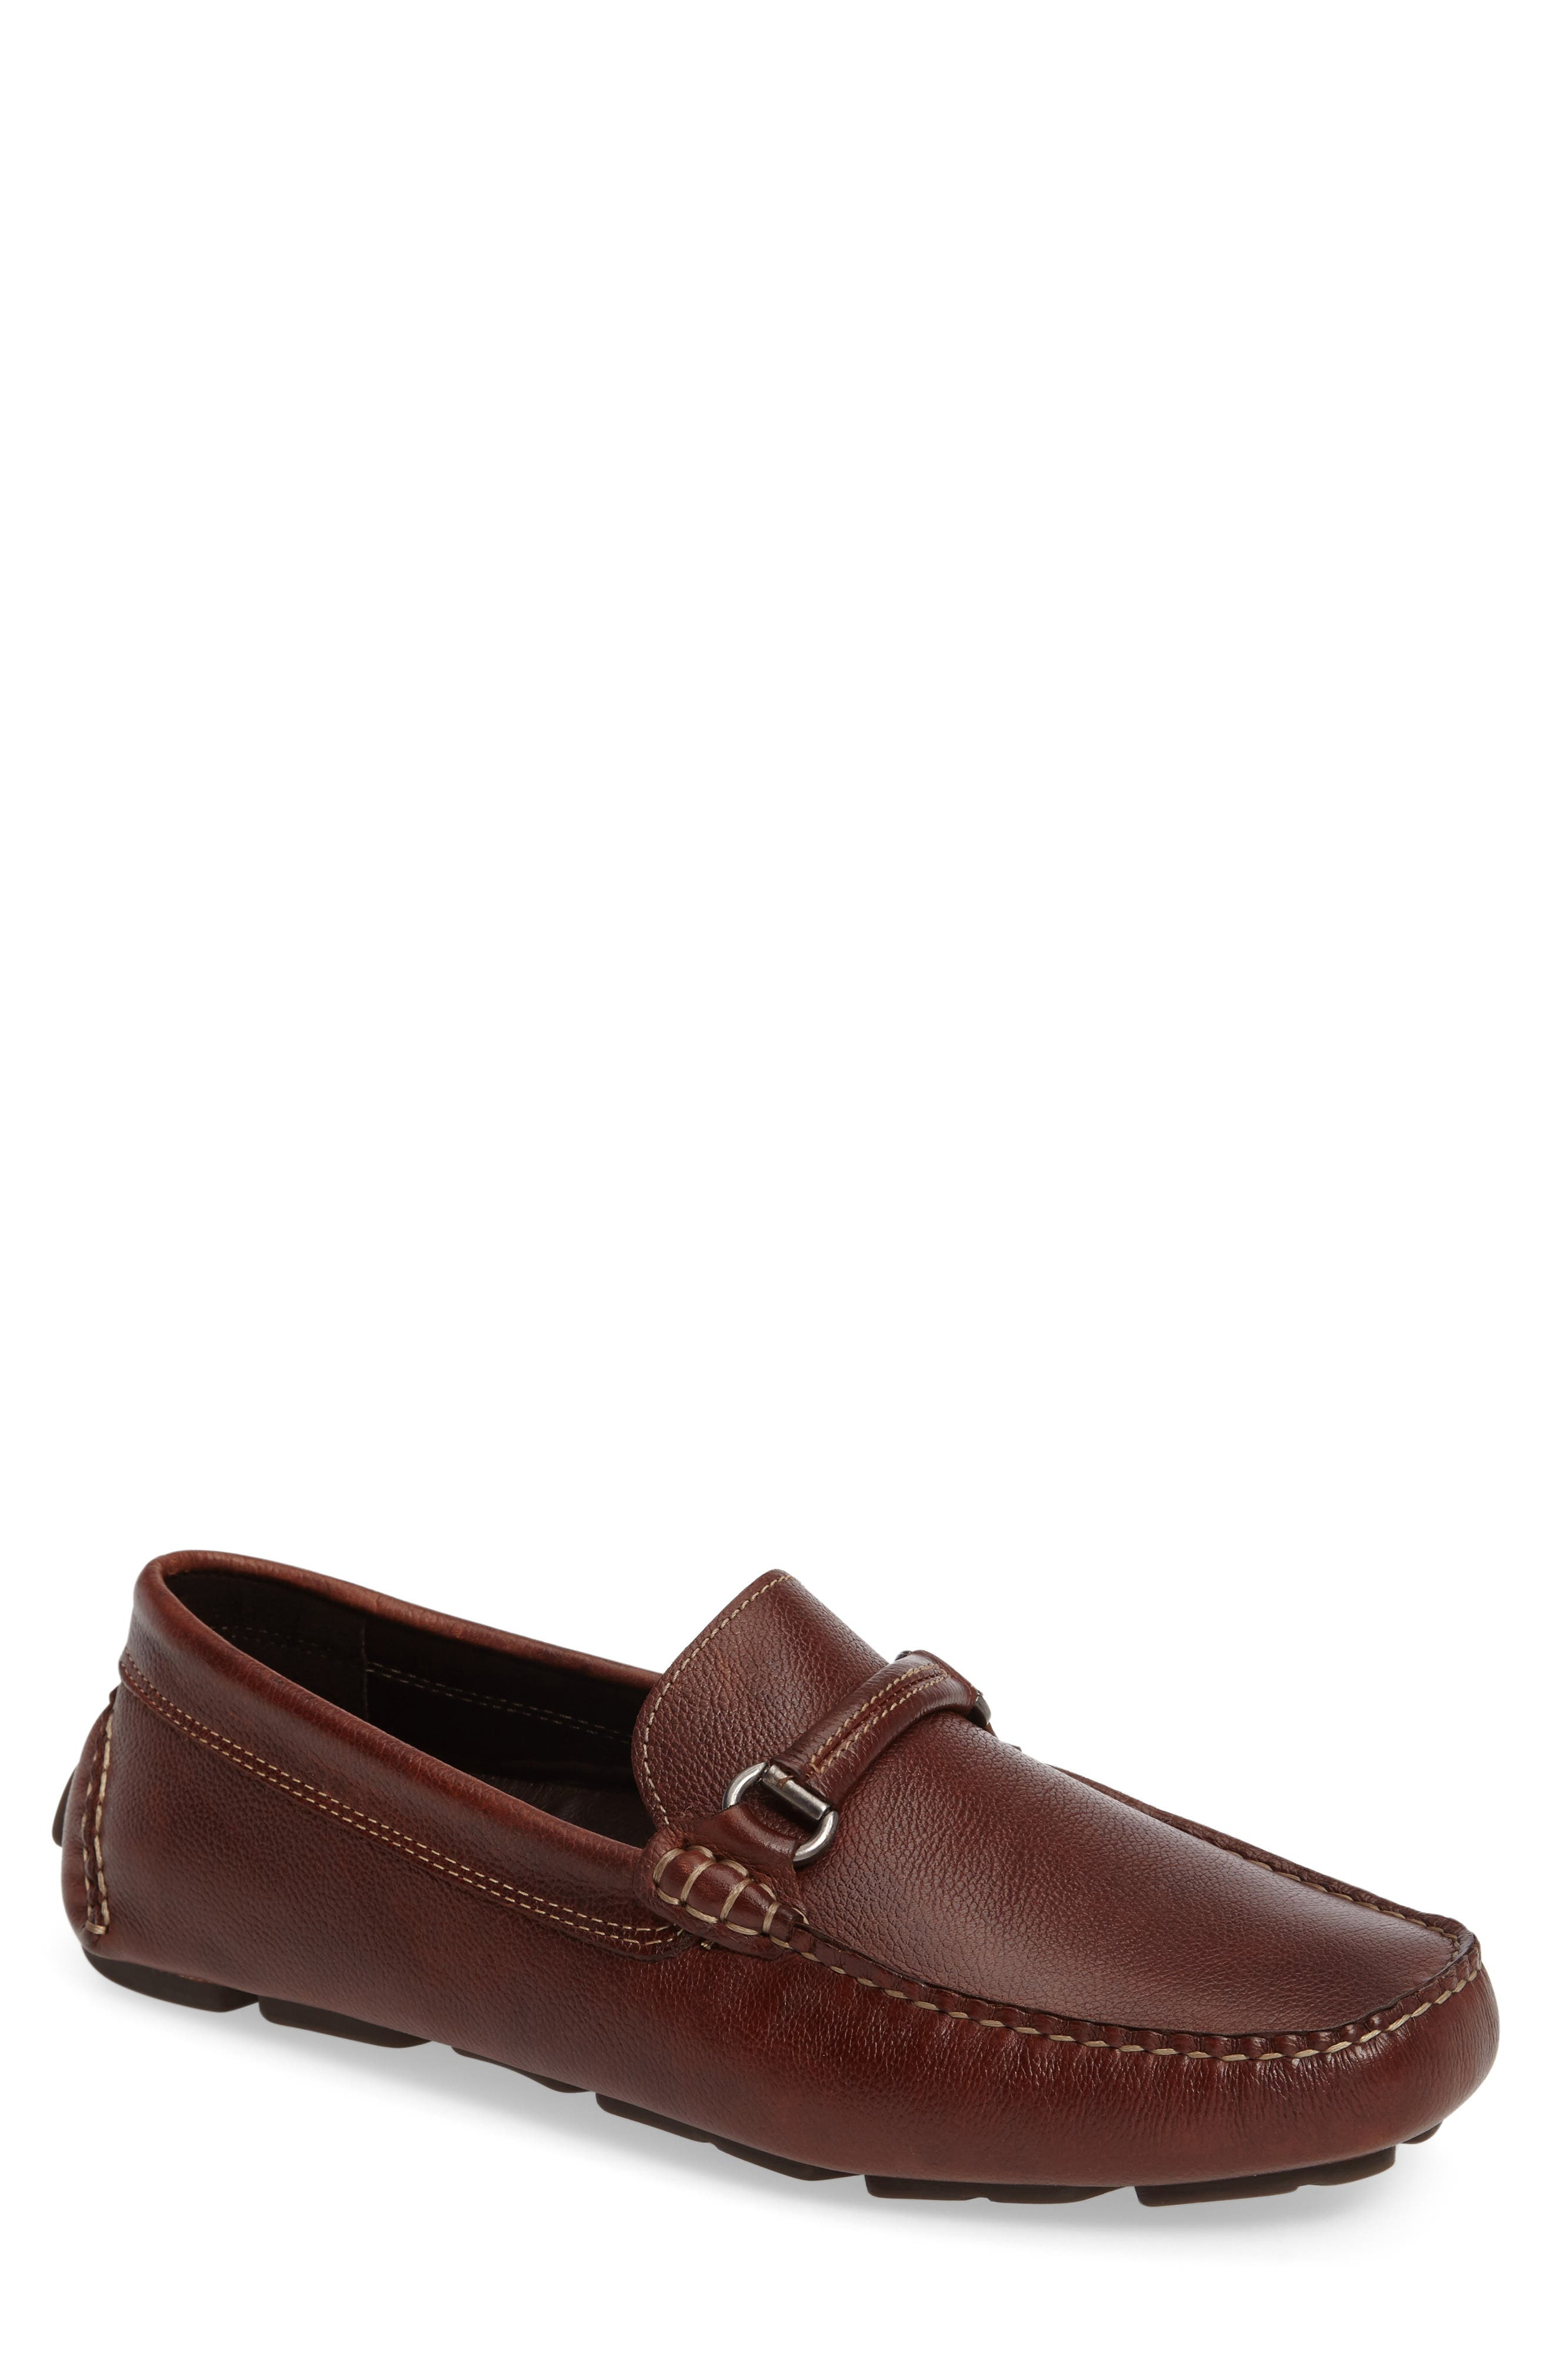 Johnston & Murphy Gibson Bit Driving Loafer, Brown